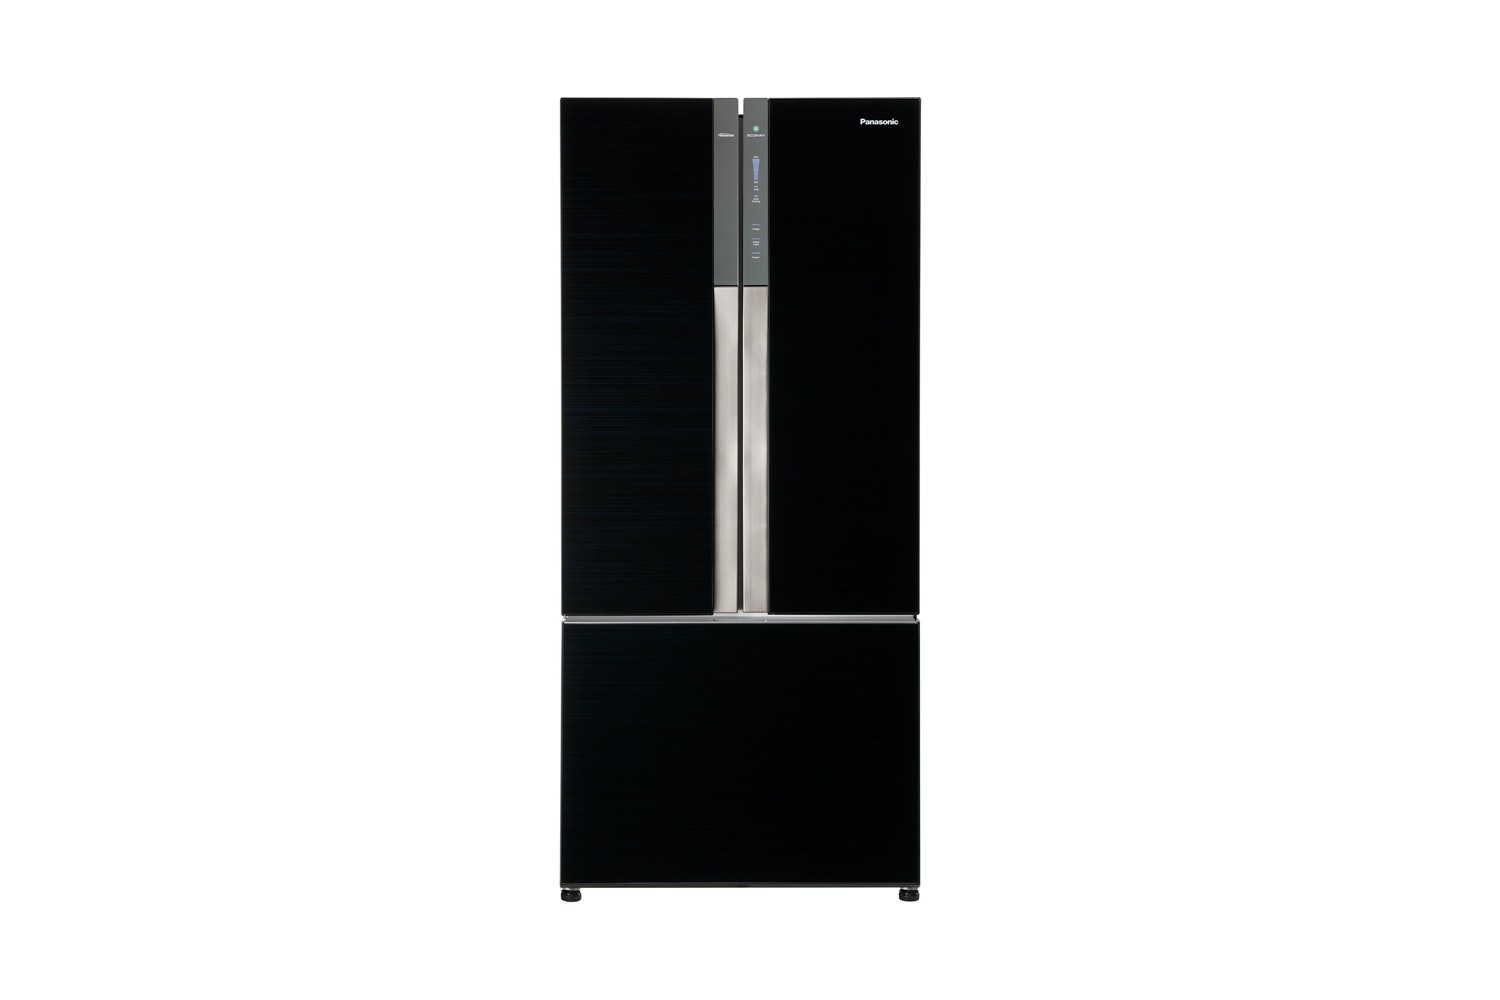 Marvelous Panasonic French Door Fridge Part - 12: Panasonic 547L French Door Fridge Freezer - Black Glass Finish | Harvey  Norman New Zealand